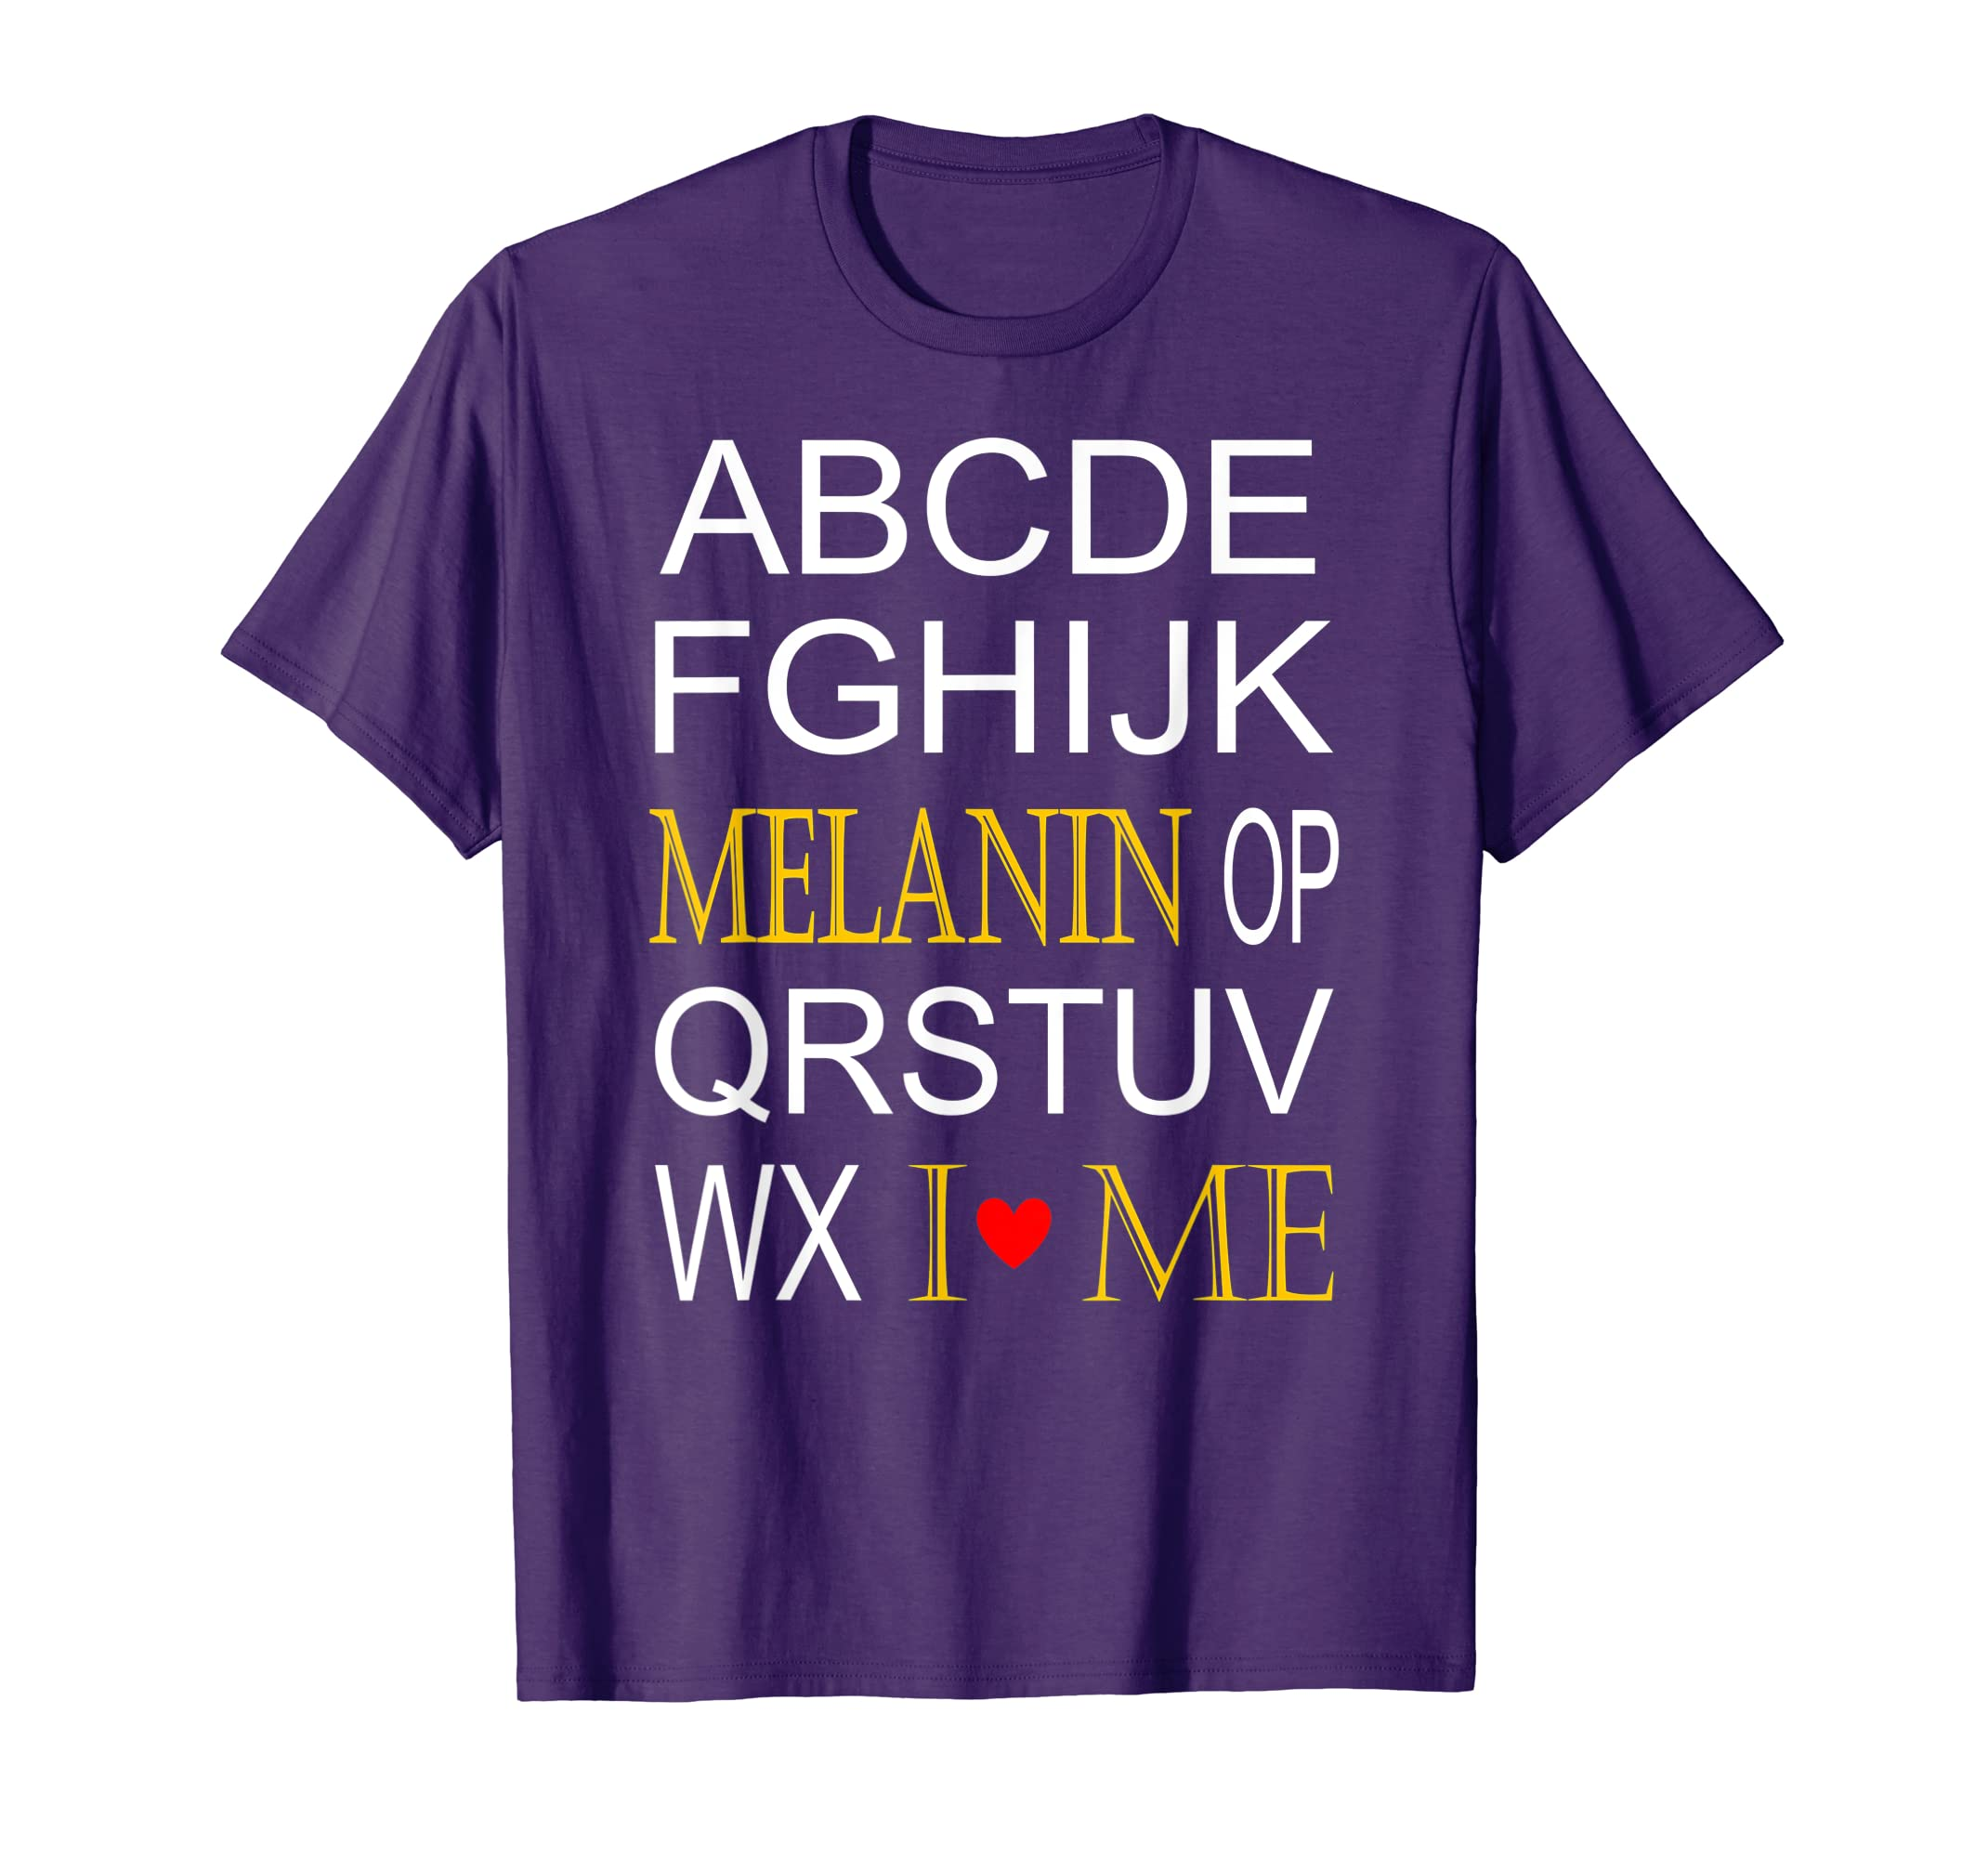 02f02bfdef3c13 Amazon.com: MELANIN ABC'S T-SHIRT FOR AFRICAN AMERICAN CHILDREN: Clothing